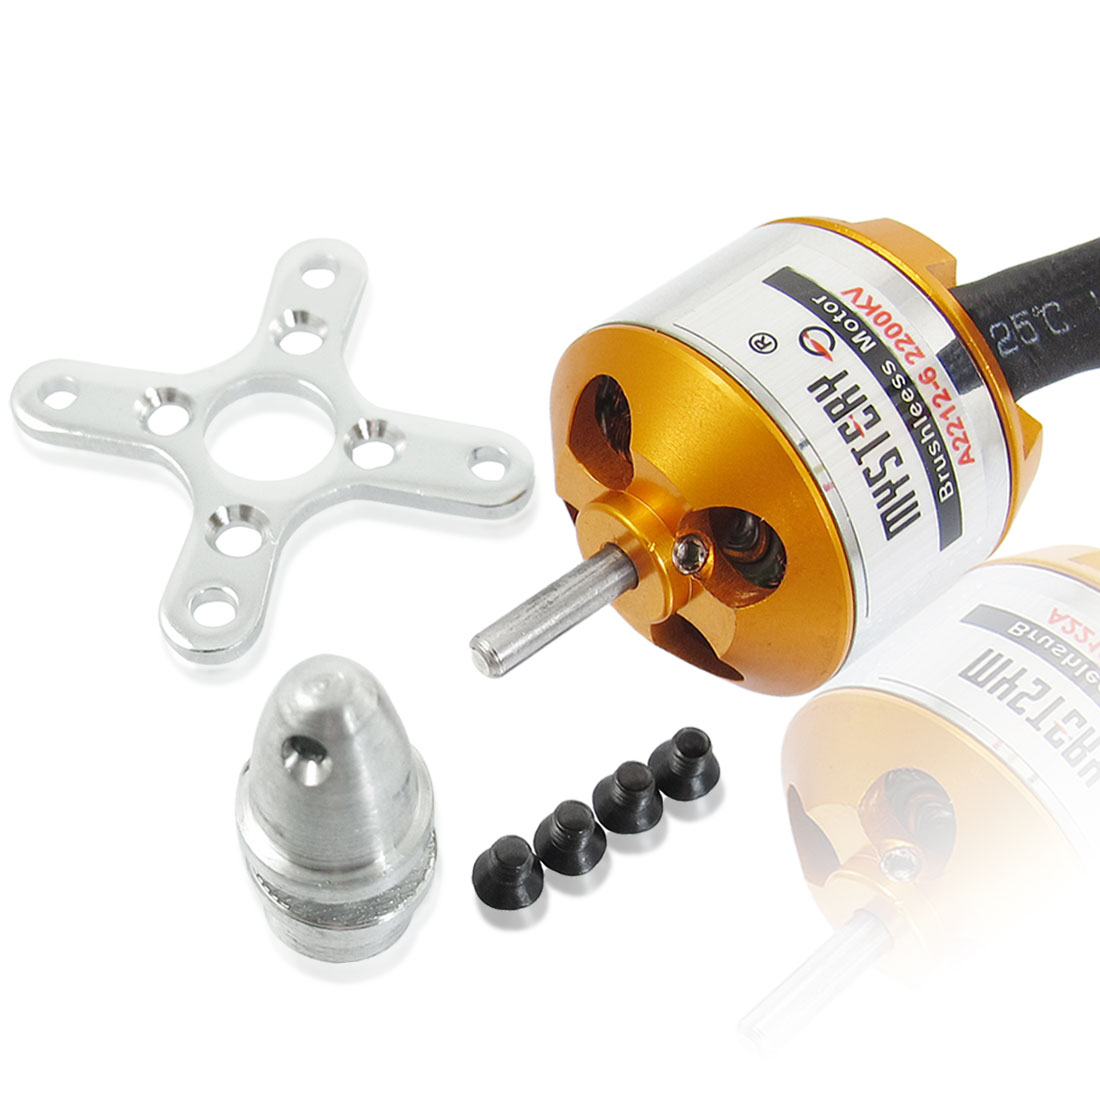 A2212-6 2200KV Outrunner Brushless Motor for RC Glider Helicopter Aircraft